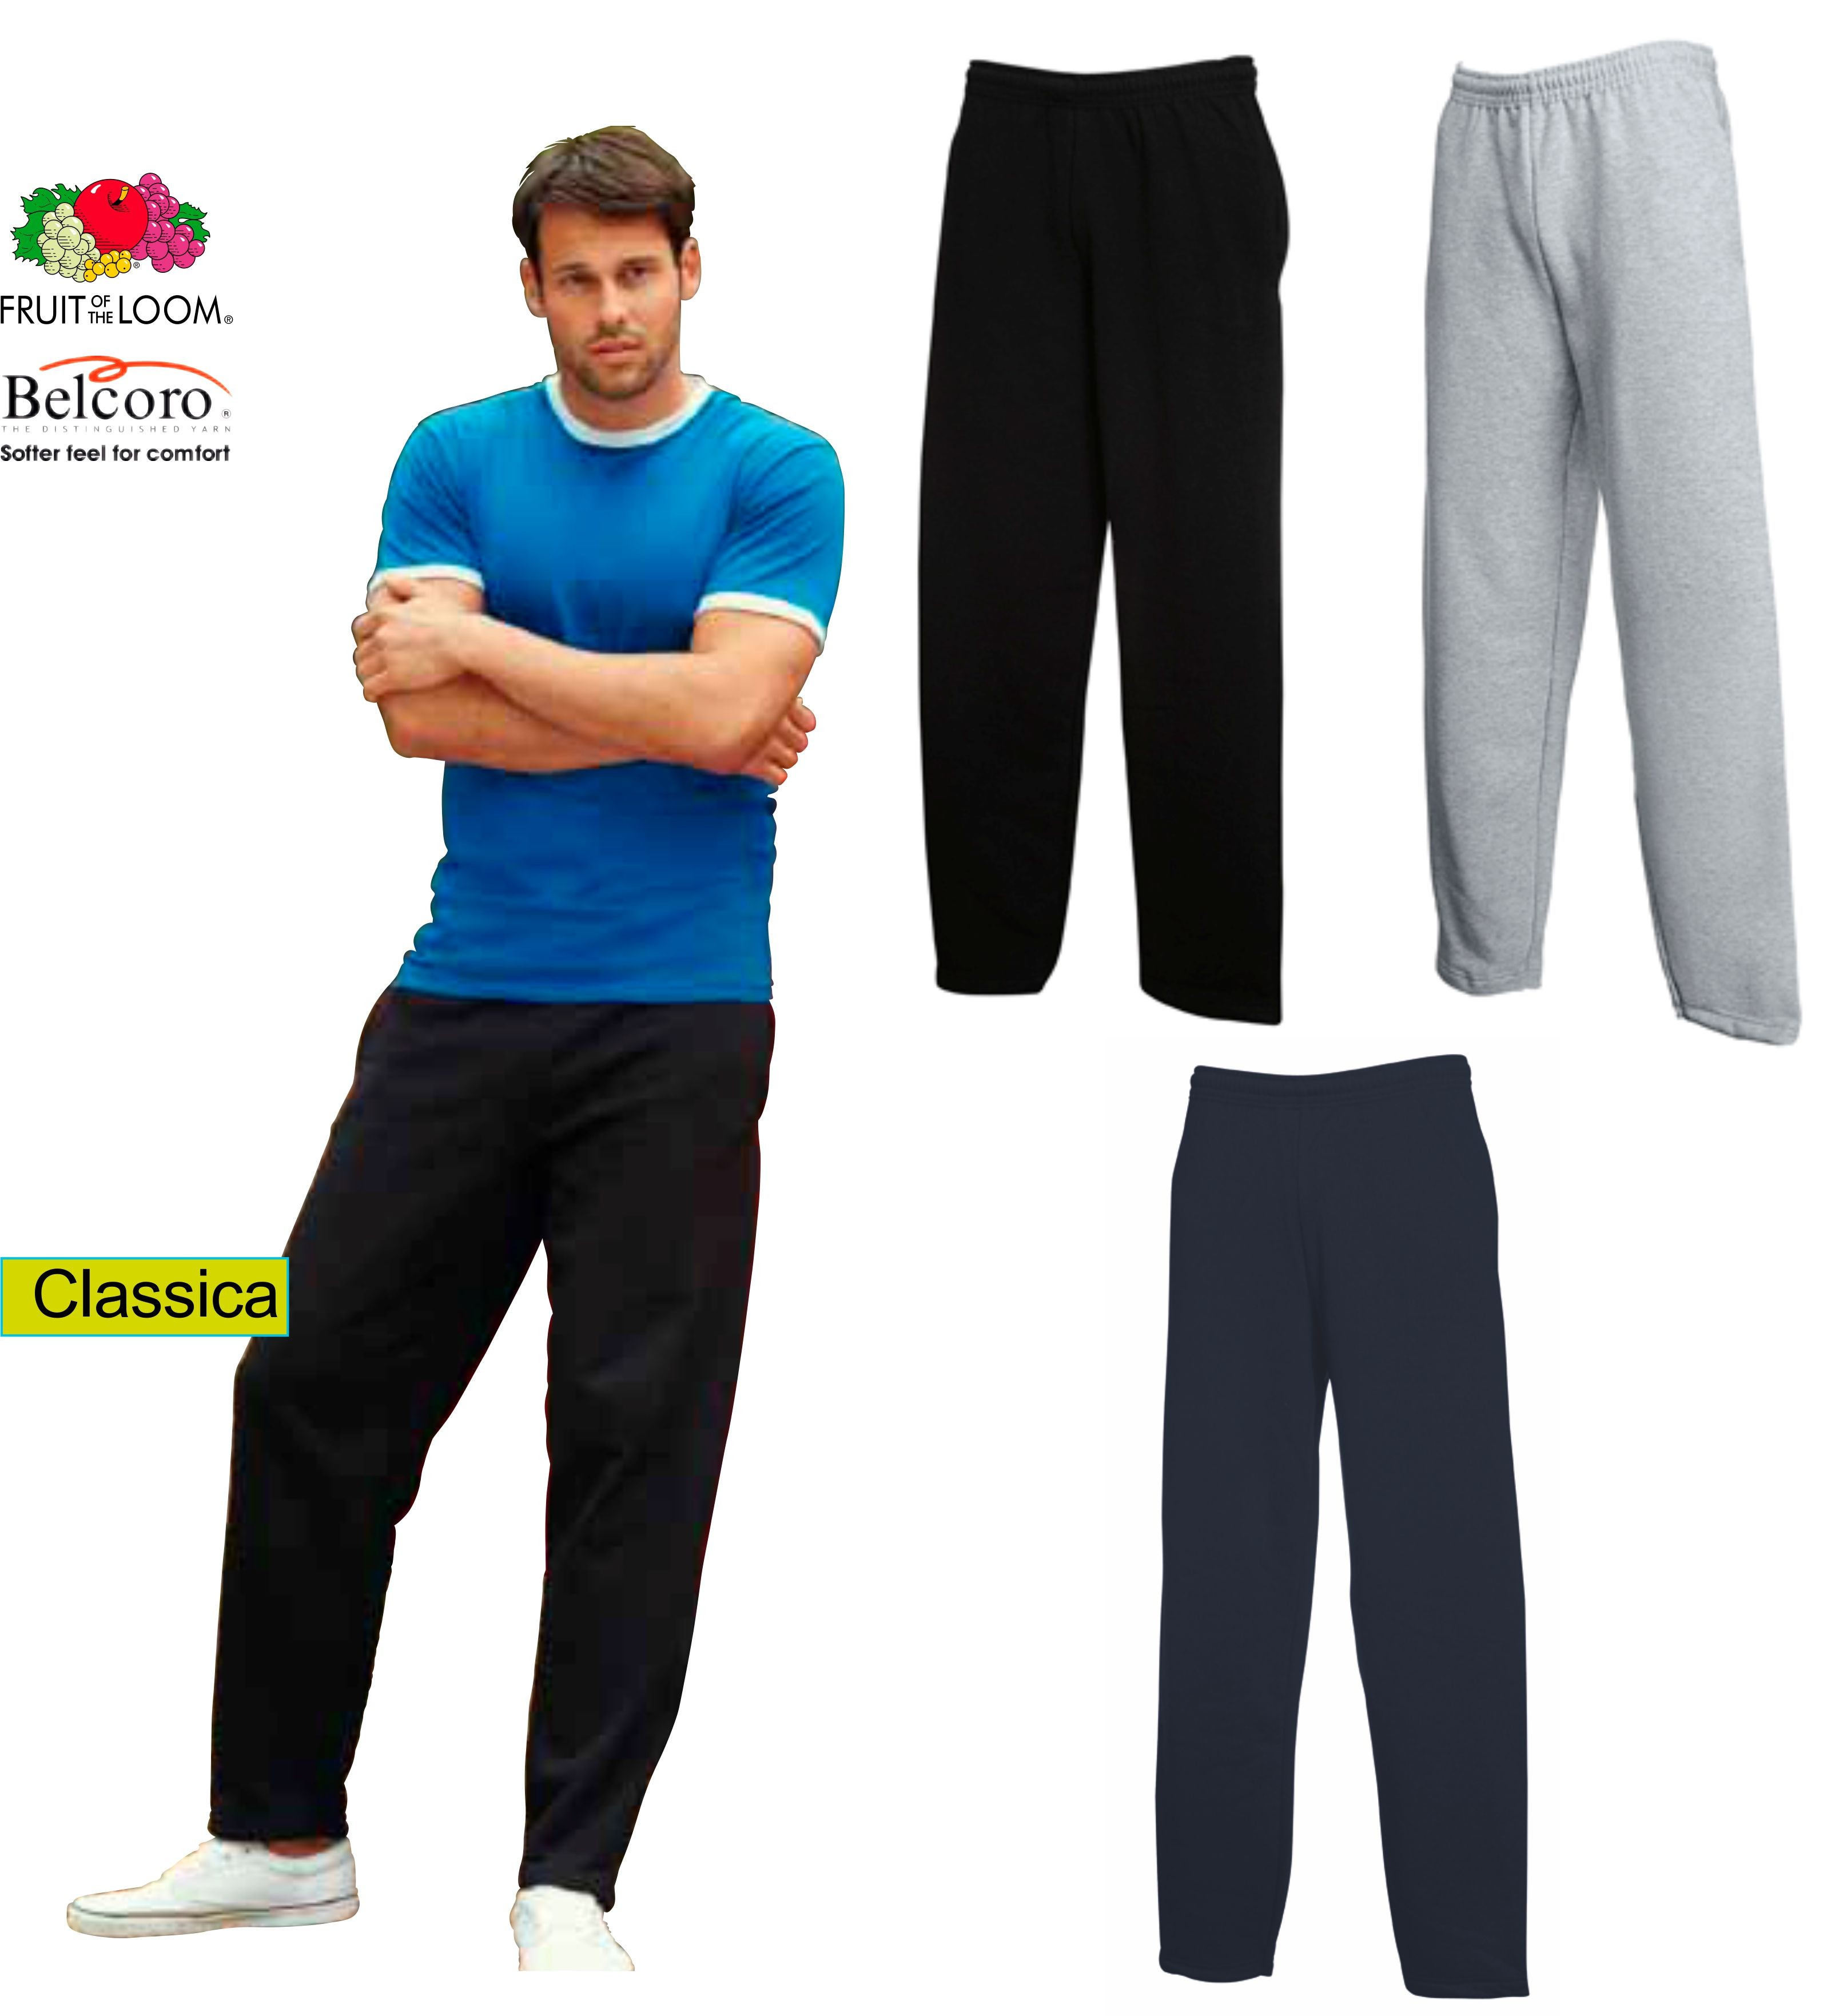 6e395f0a0d6cb4 PANTALONE FRUIT OF THE LOOM FR640320 TUTA COTONE UOMO FELPATI - Chico  Bonito Shop